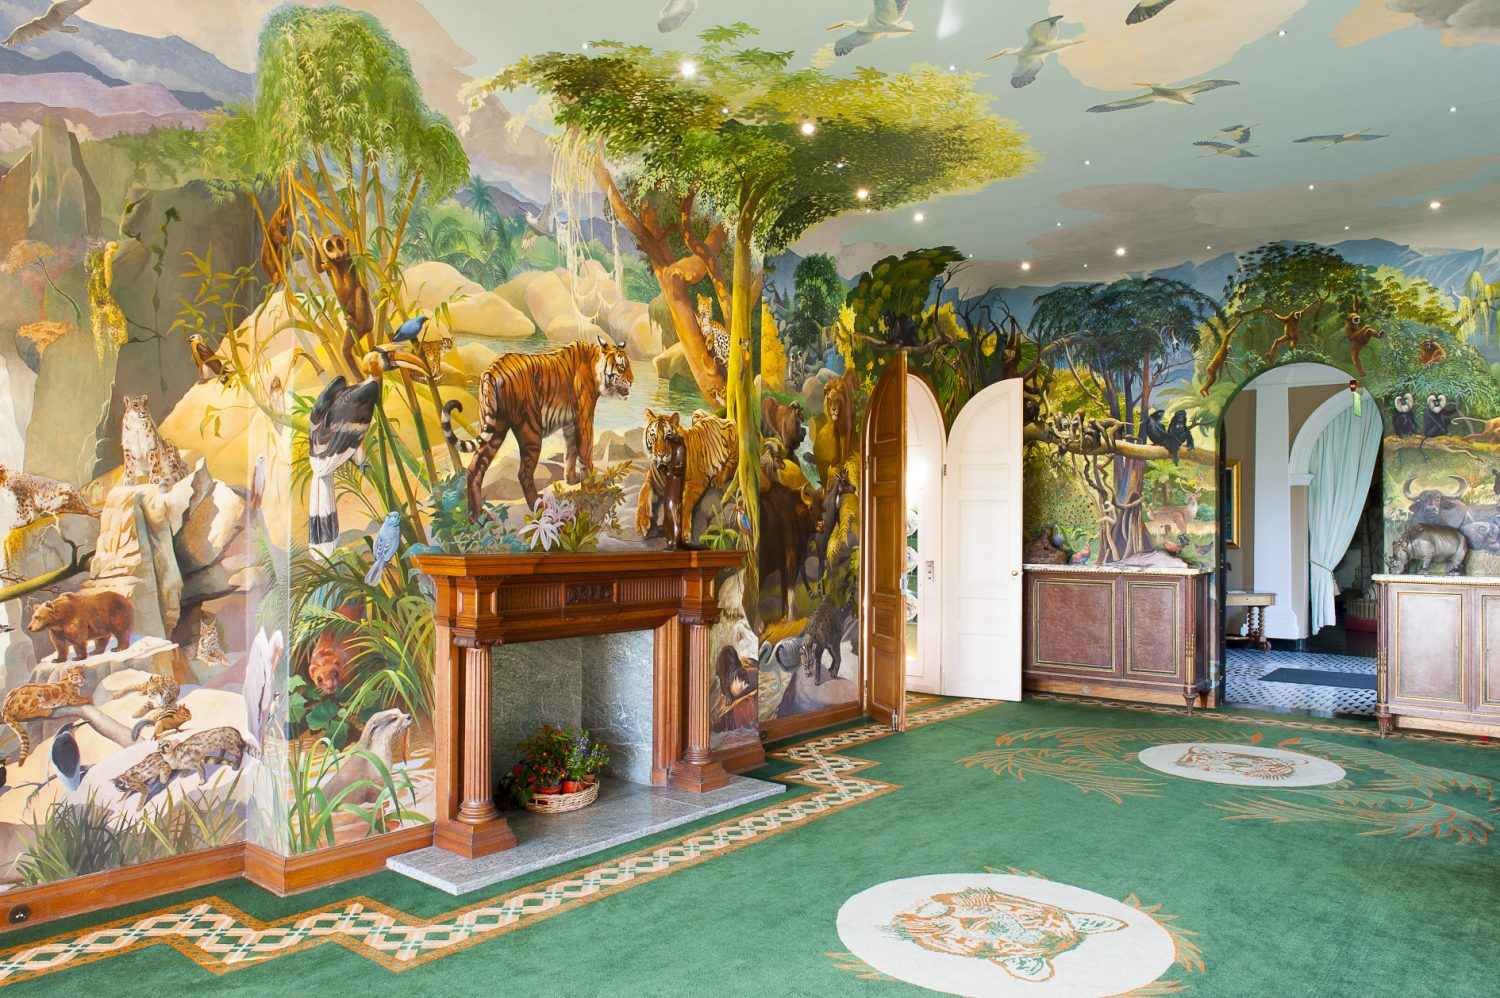 The vibrant Spencer Roberts room is adorned with images of animals in their natural habitats – from birds and reptiles to monkeys and bears. A grass green carpet adds to the feeling of being outside